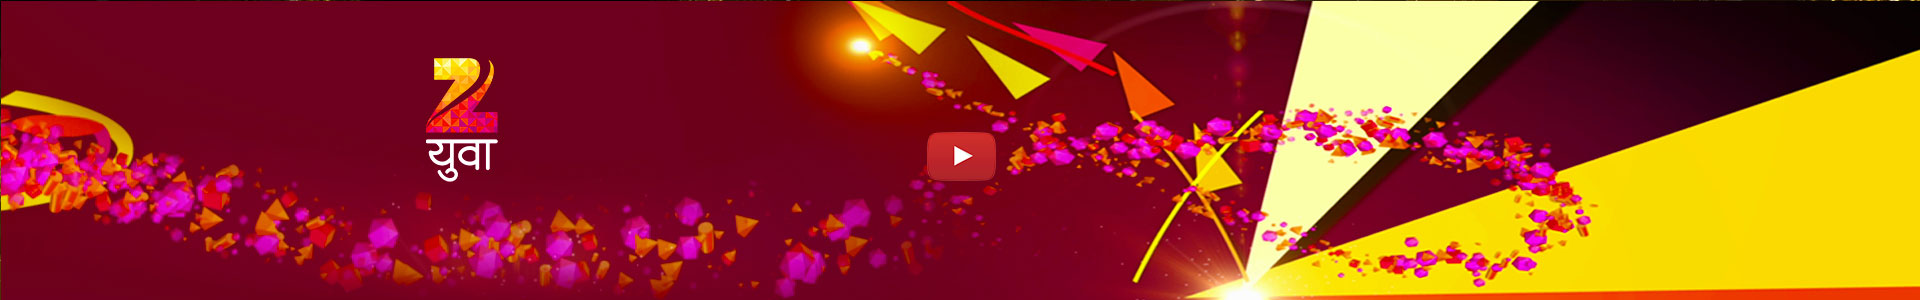 VFX Animation, Led Interactive Dance, 3d holographic, Product Launch